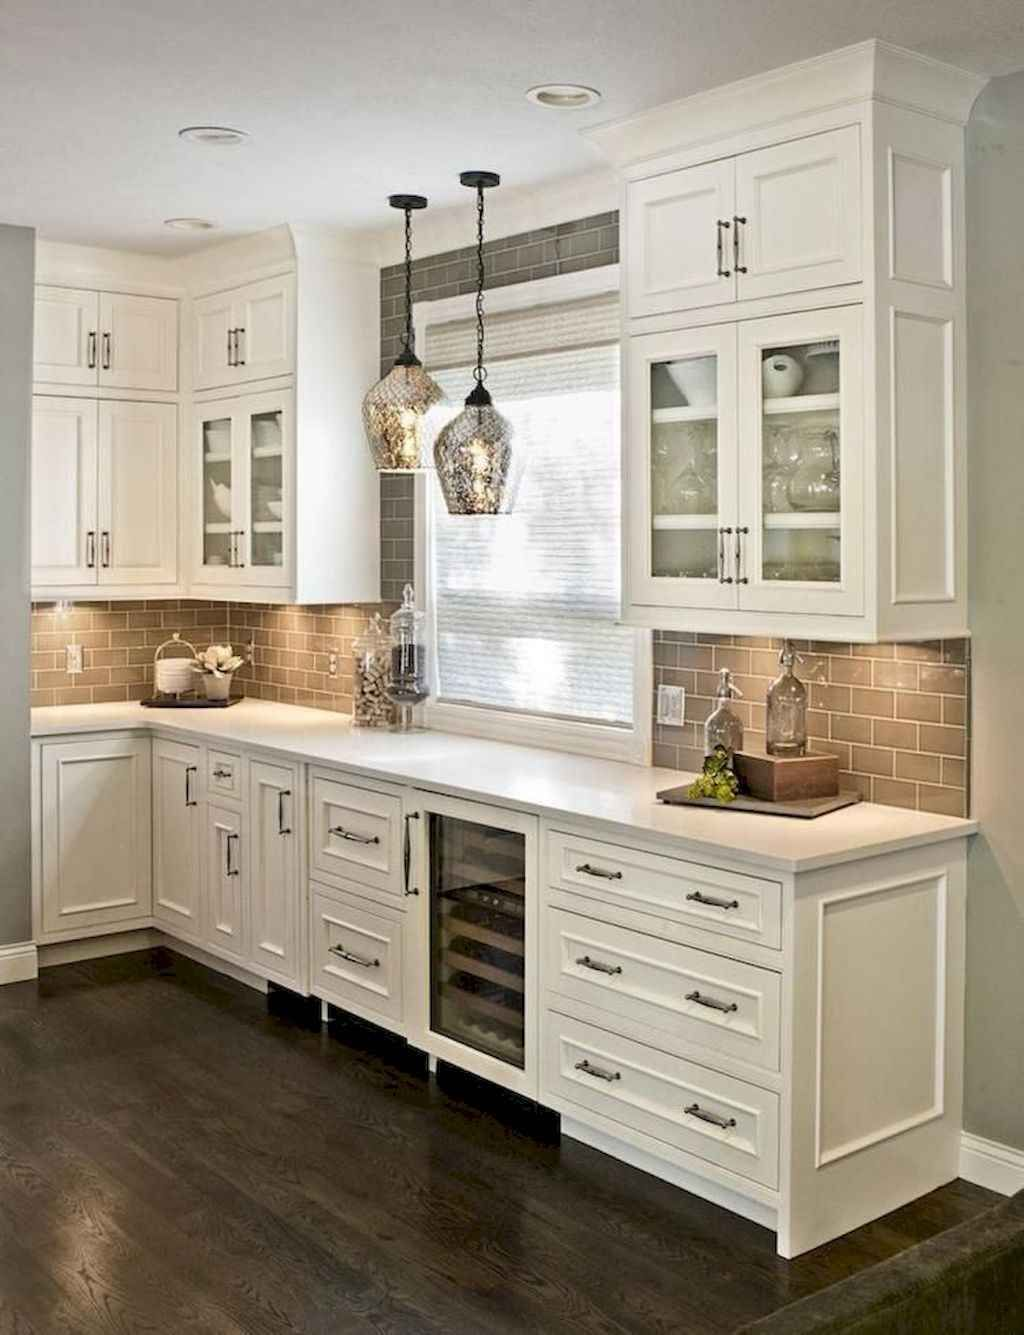 65 Modern Farmhouse Kitchen Cabinet Makeover Ideas - Kitchen cabinet design, Rustic kitchen cabinets, Kitchen cabinets decor, Kitchen backsplash designs, Kitchen renovation, Farmhouse kitchen backsplash - Farmhousestyle kitchens tend to focus on natural materials, unpretentious design, and cooking spaces that can accommodate large meals  If you're thinking of kitchen decorating or remodeling, you can think about going for farmhouse decor because it's among the most wellknown… Continue Reading →